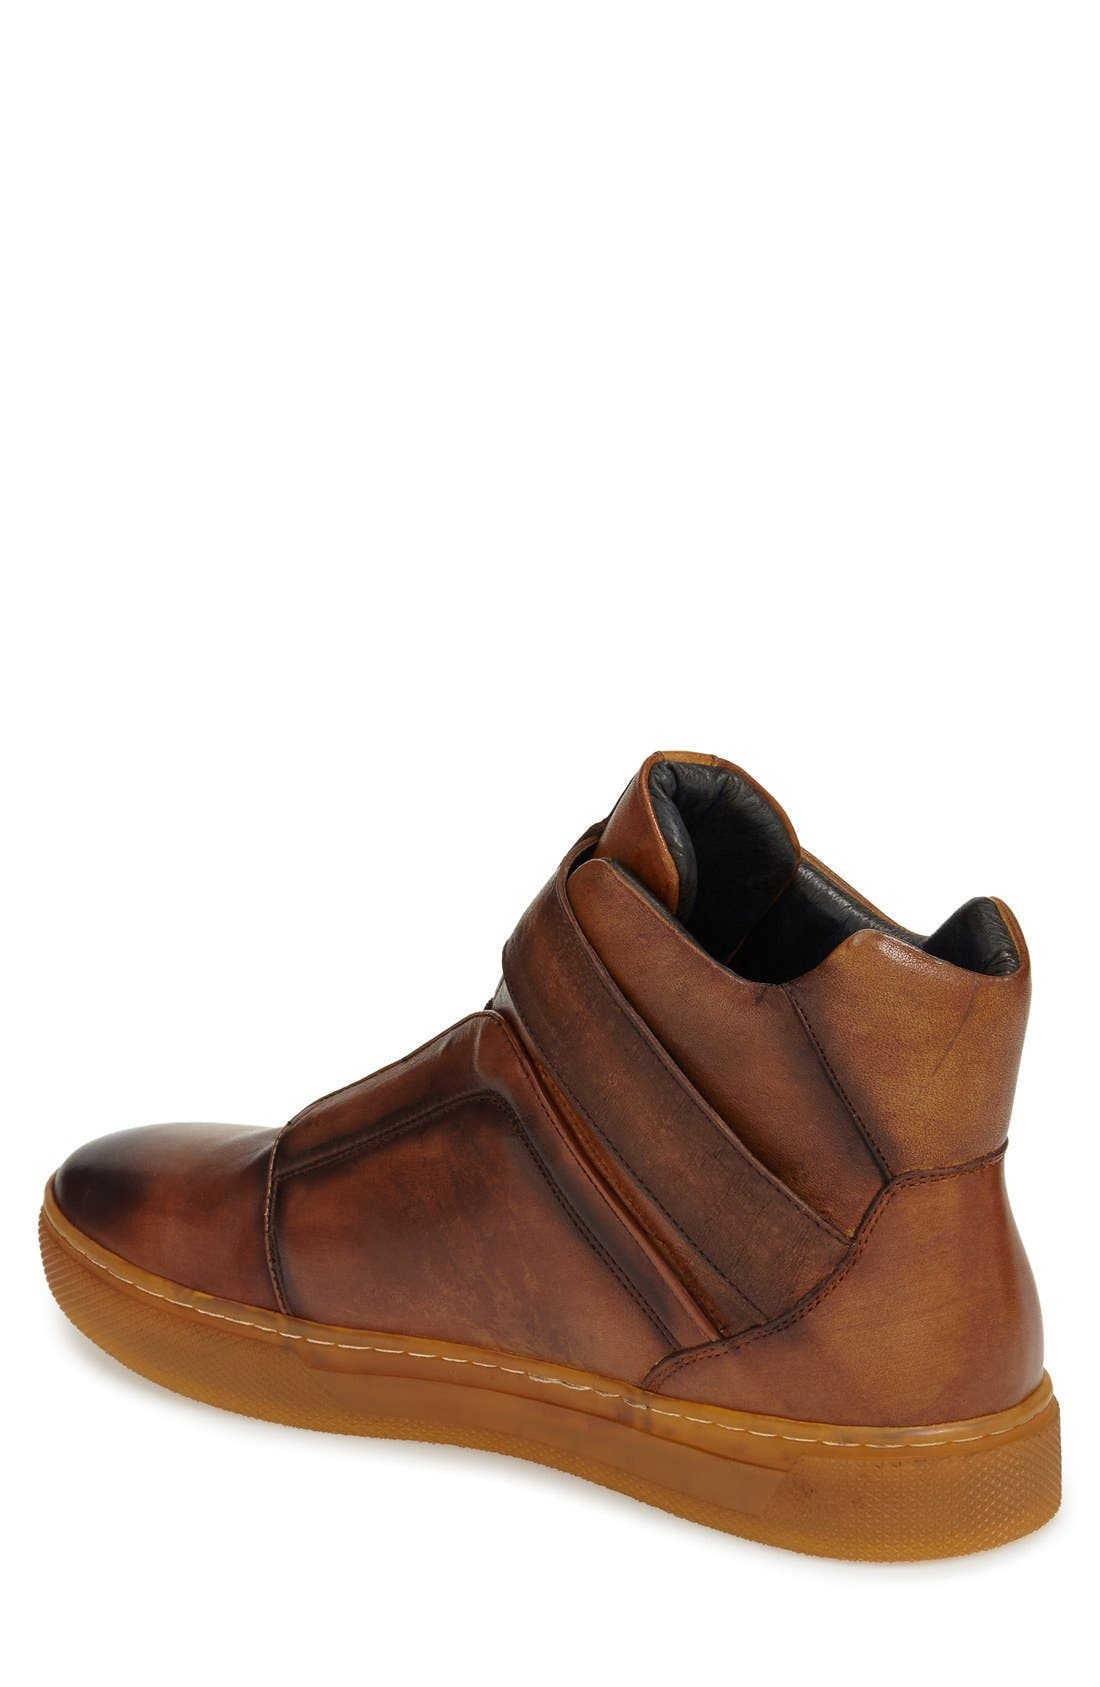 Scully High Top Sneaker,                             Alternate thumbnail 2, color,                             TAN LEATHER